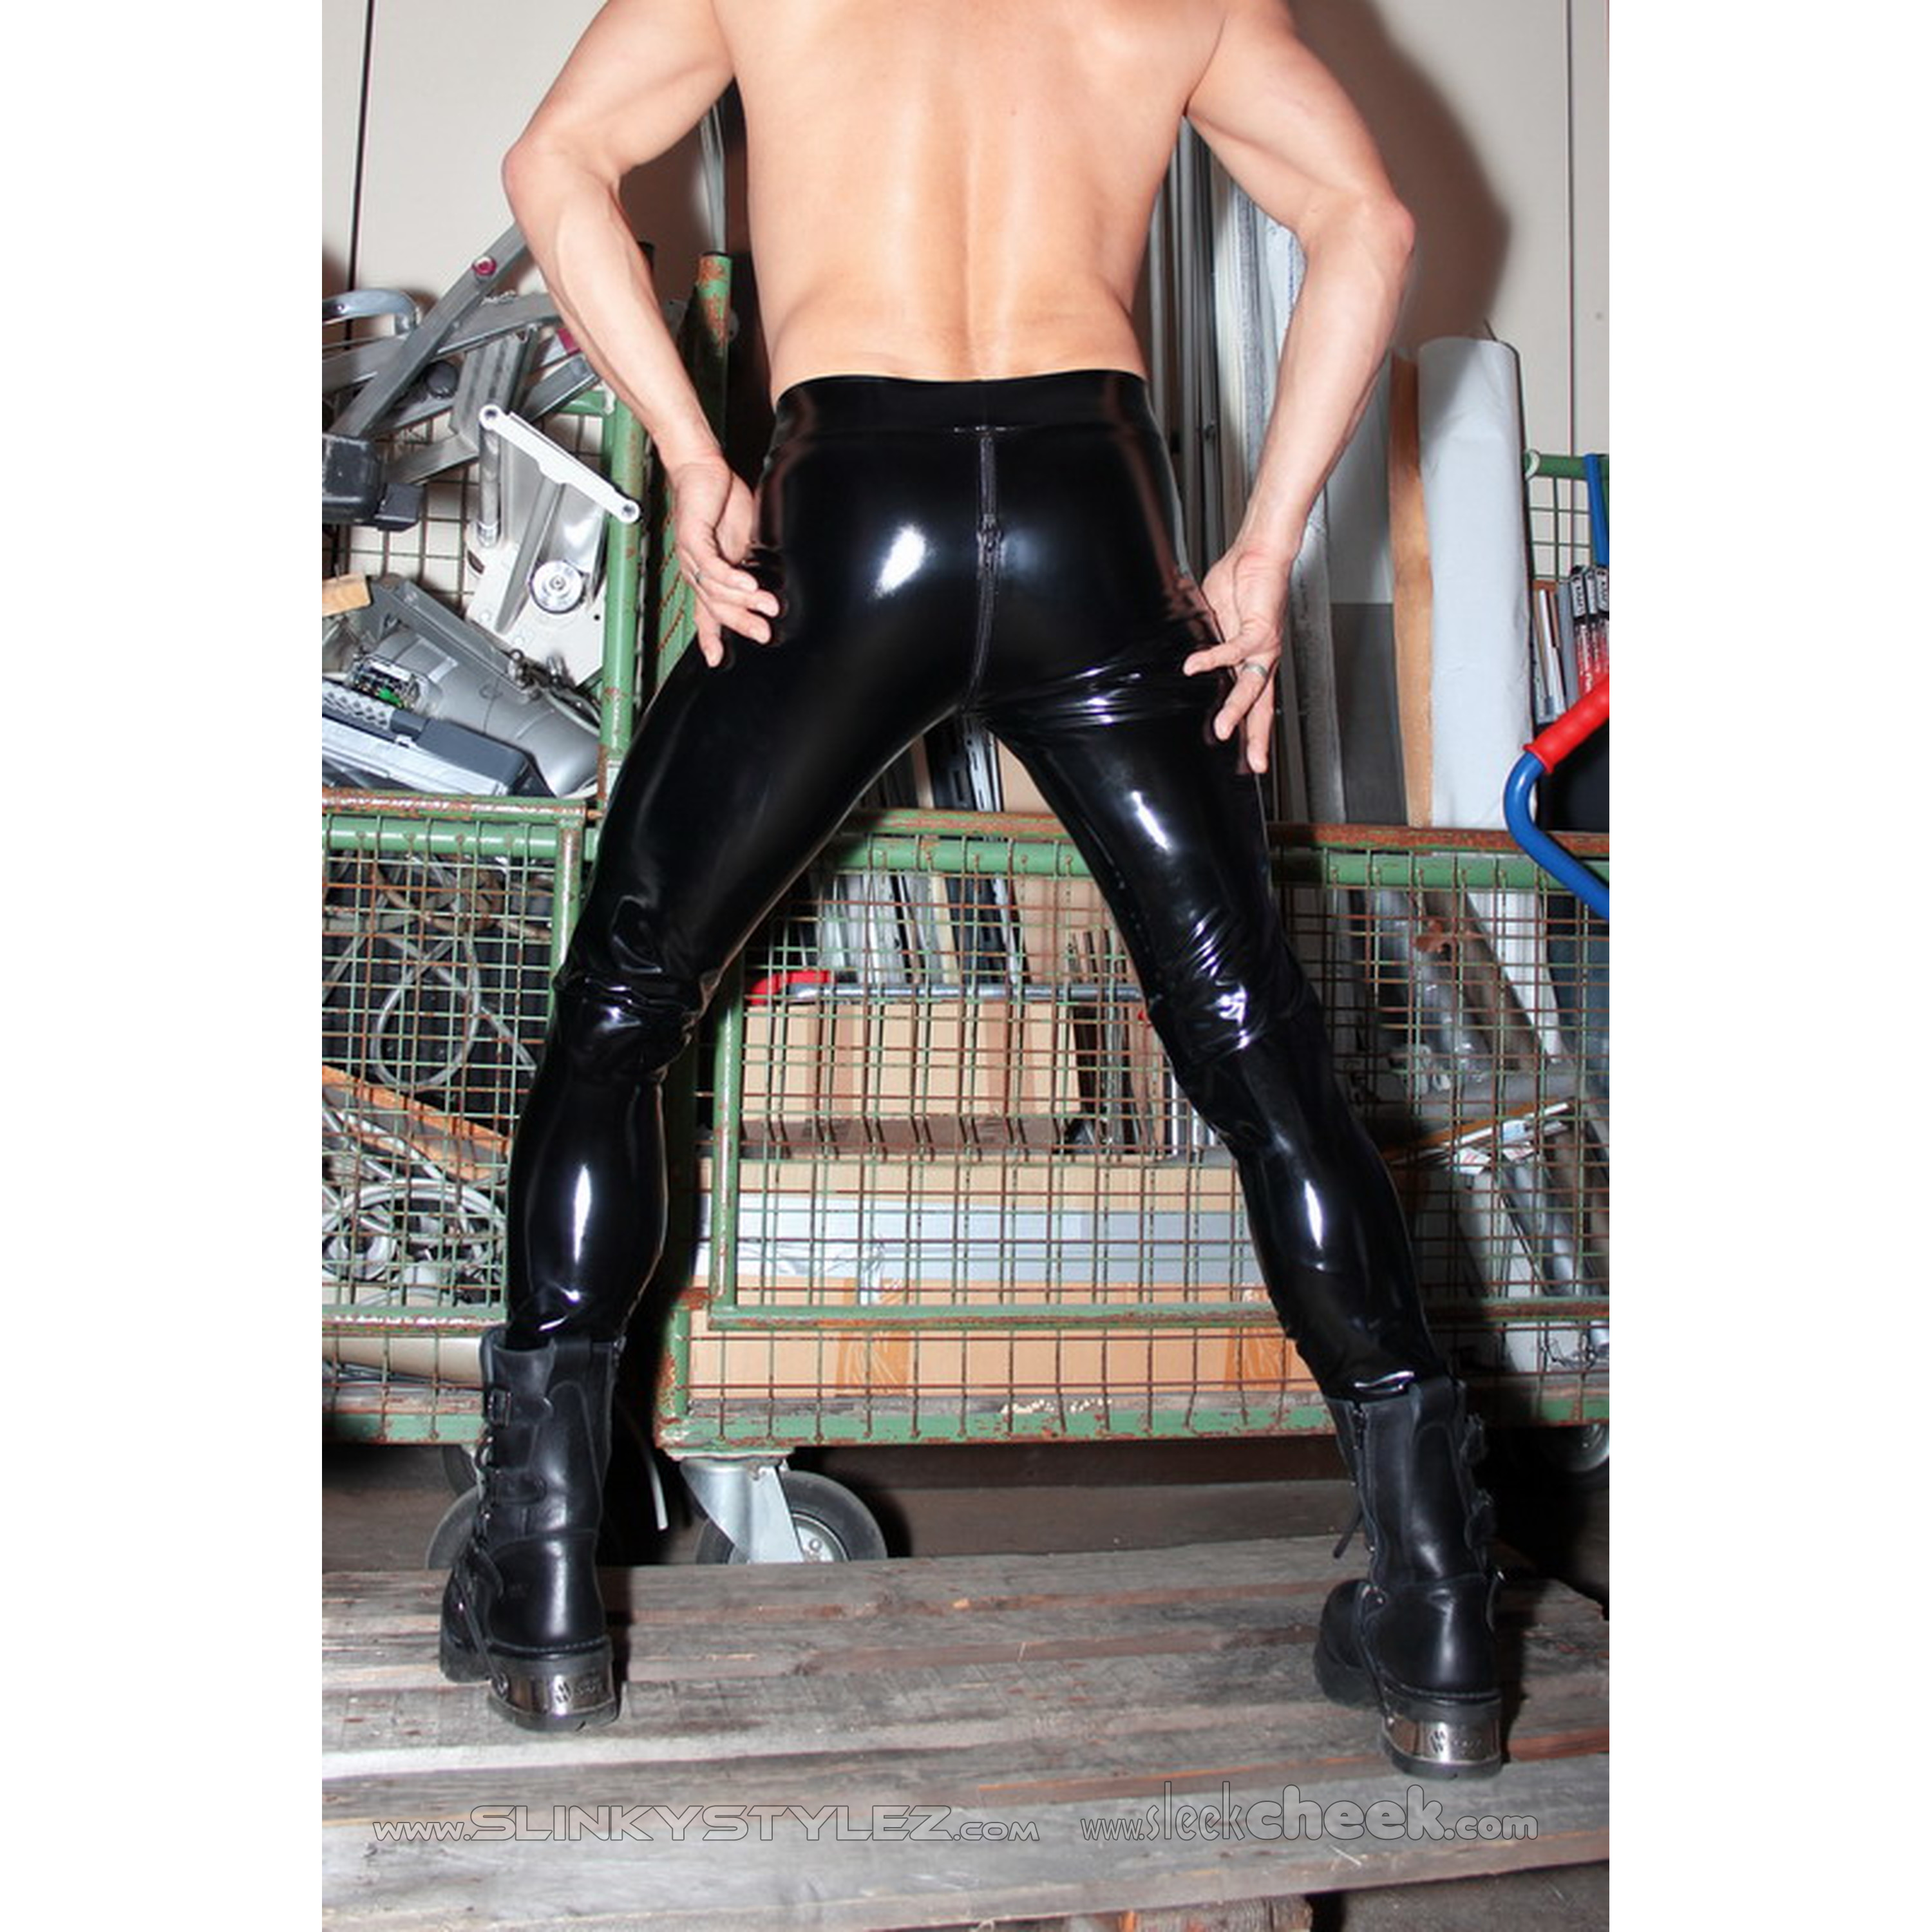 SLINKYSTYLEZ Anatomic OUVERT-ZIP Leggings HL3AP_ZV6 - COATED FABRICS - KUNDENWAHL (L32H)